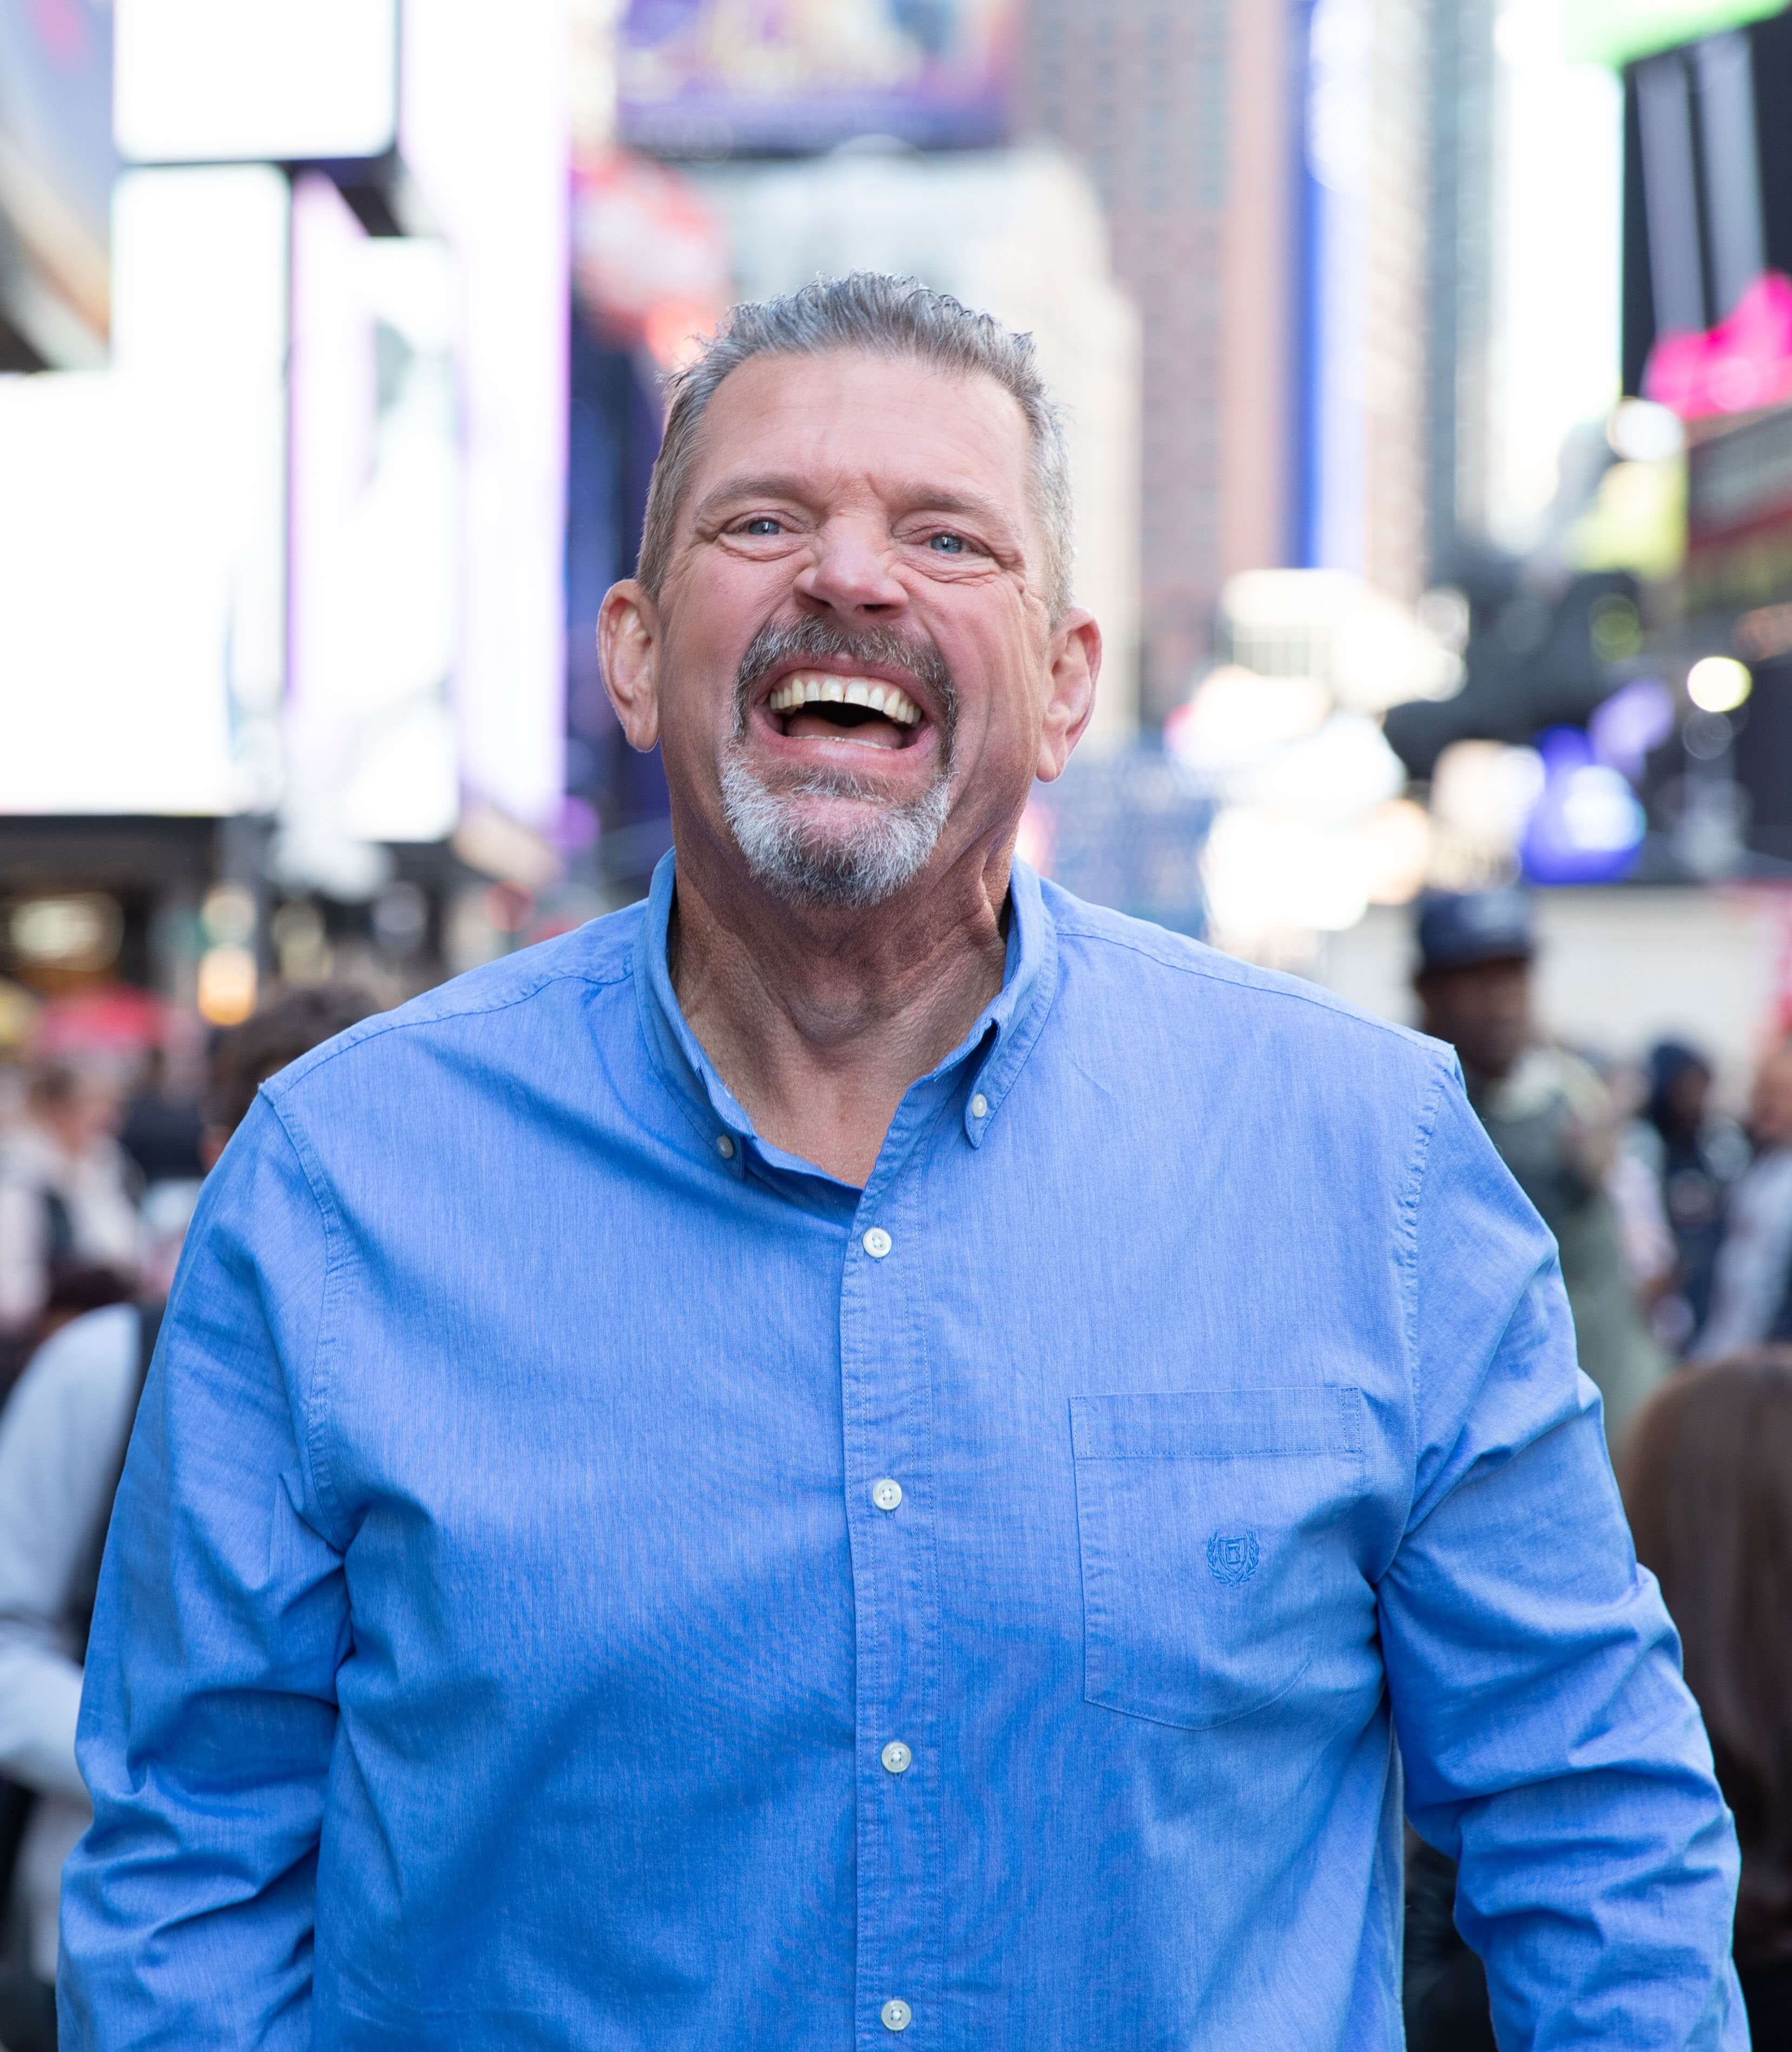 Image of a man laughing in a city